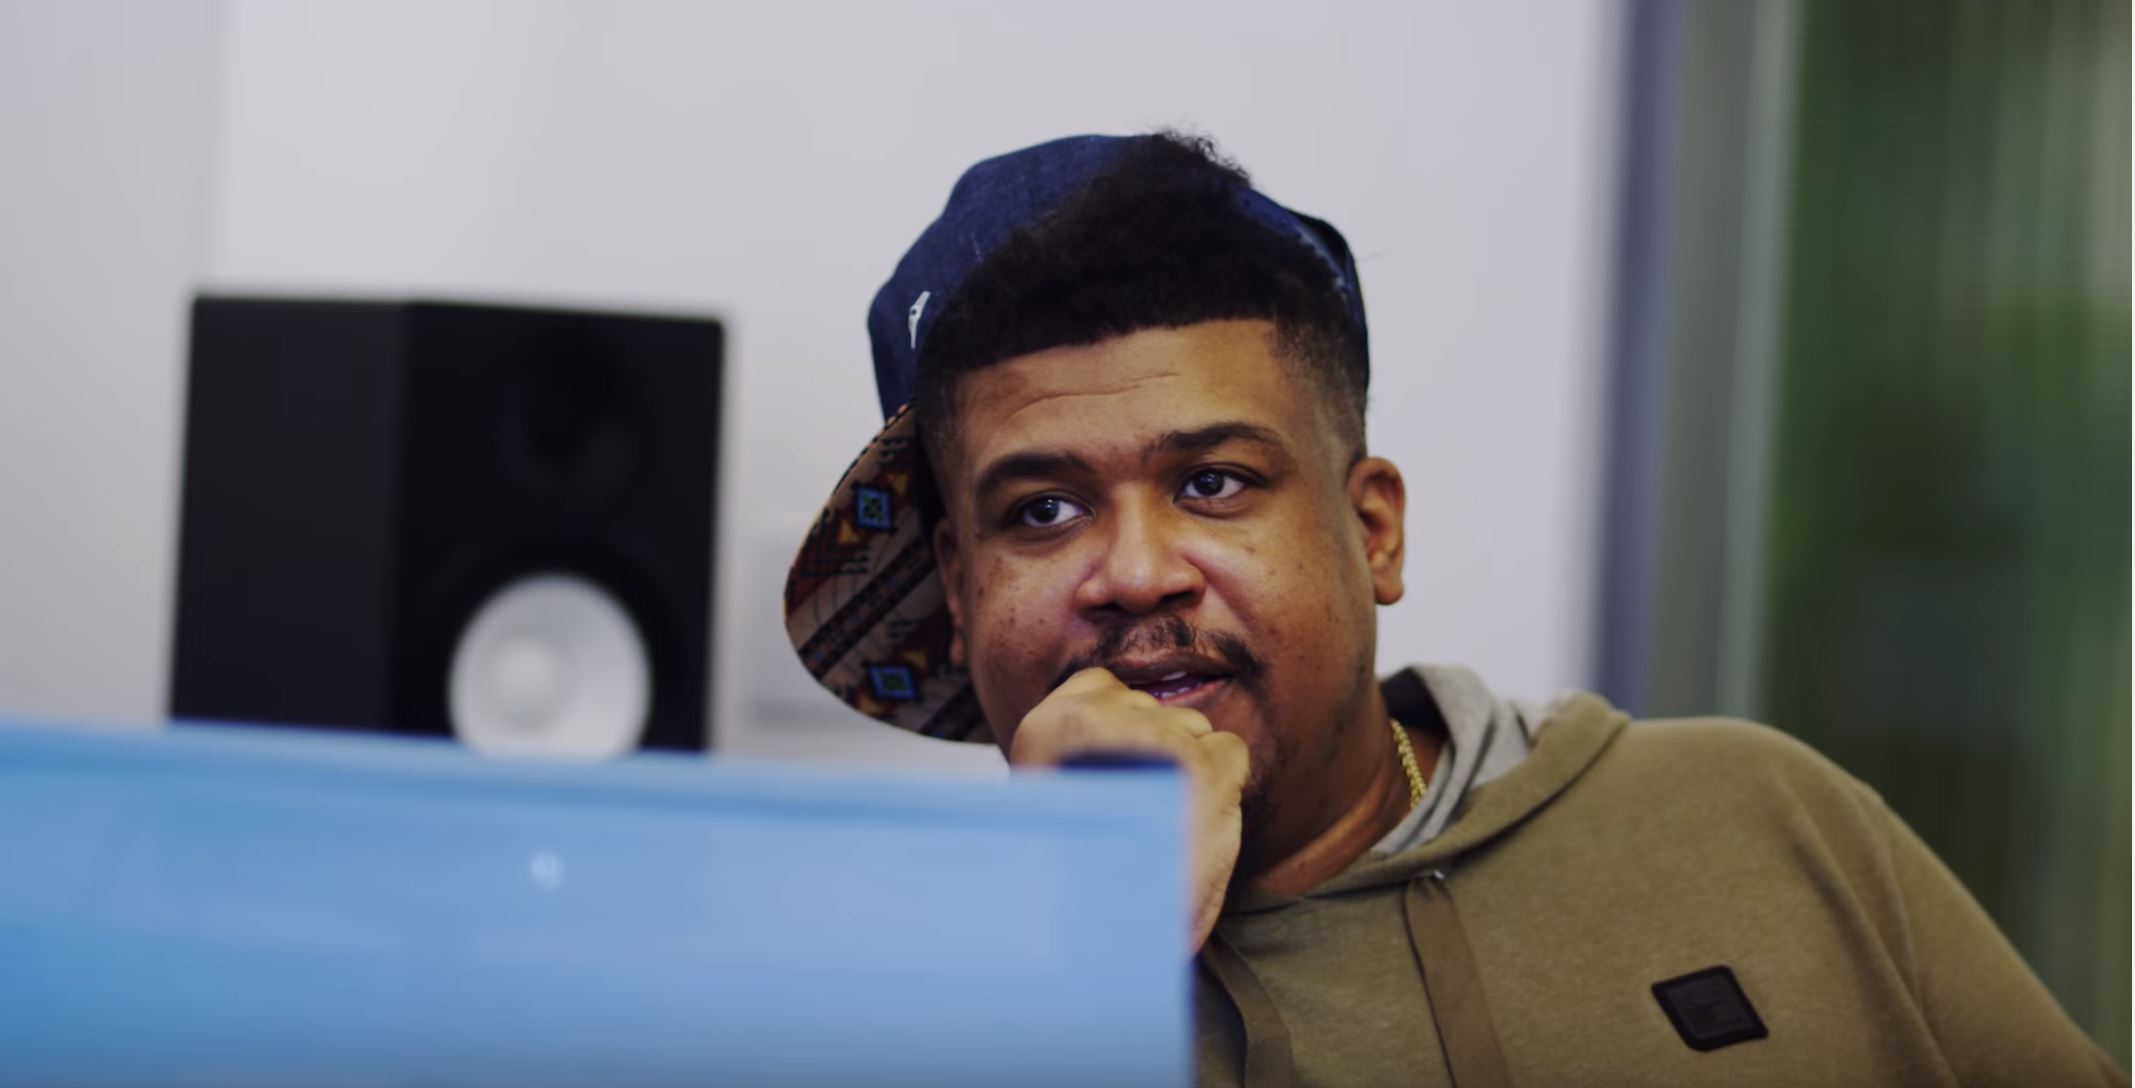 Watch The New De La Soul Documentary now, here and free